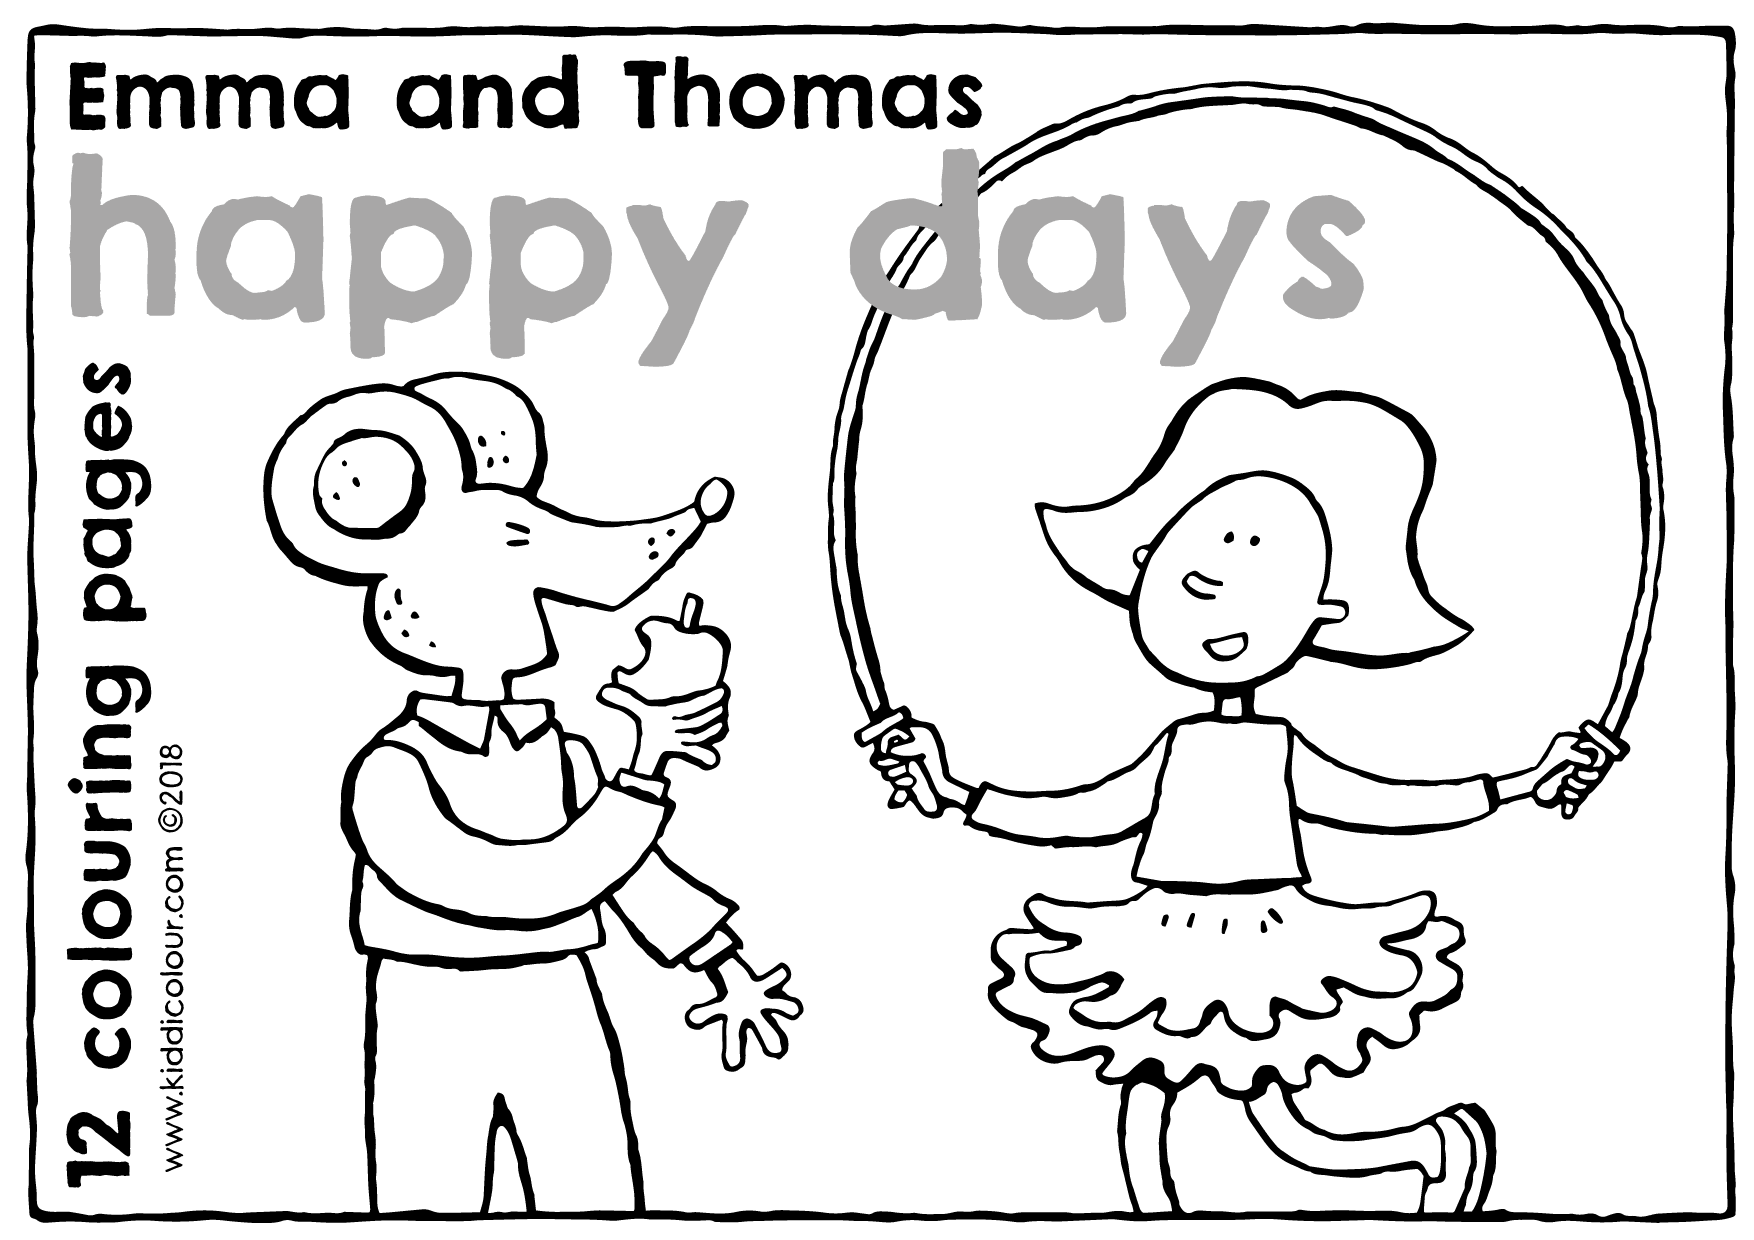 Emma and Thomas colouring book: happy days